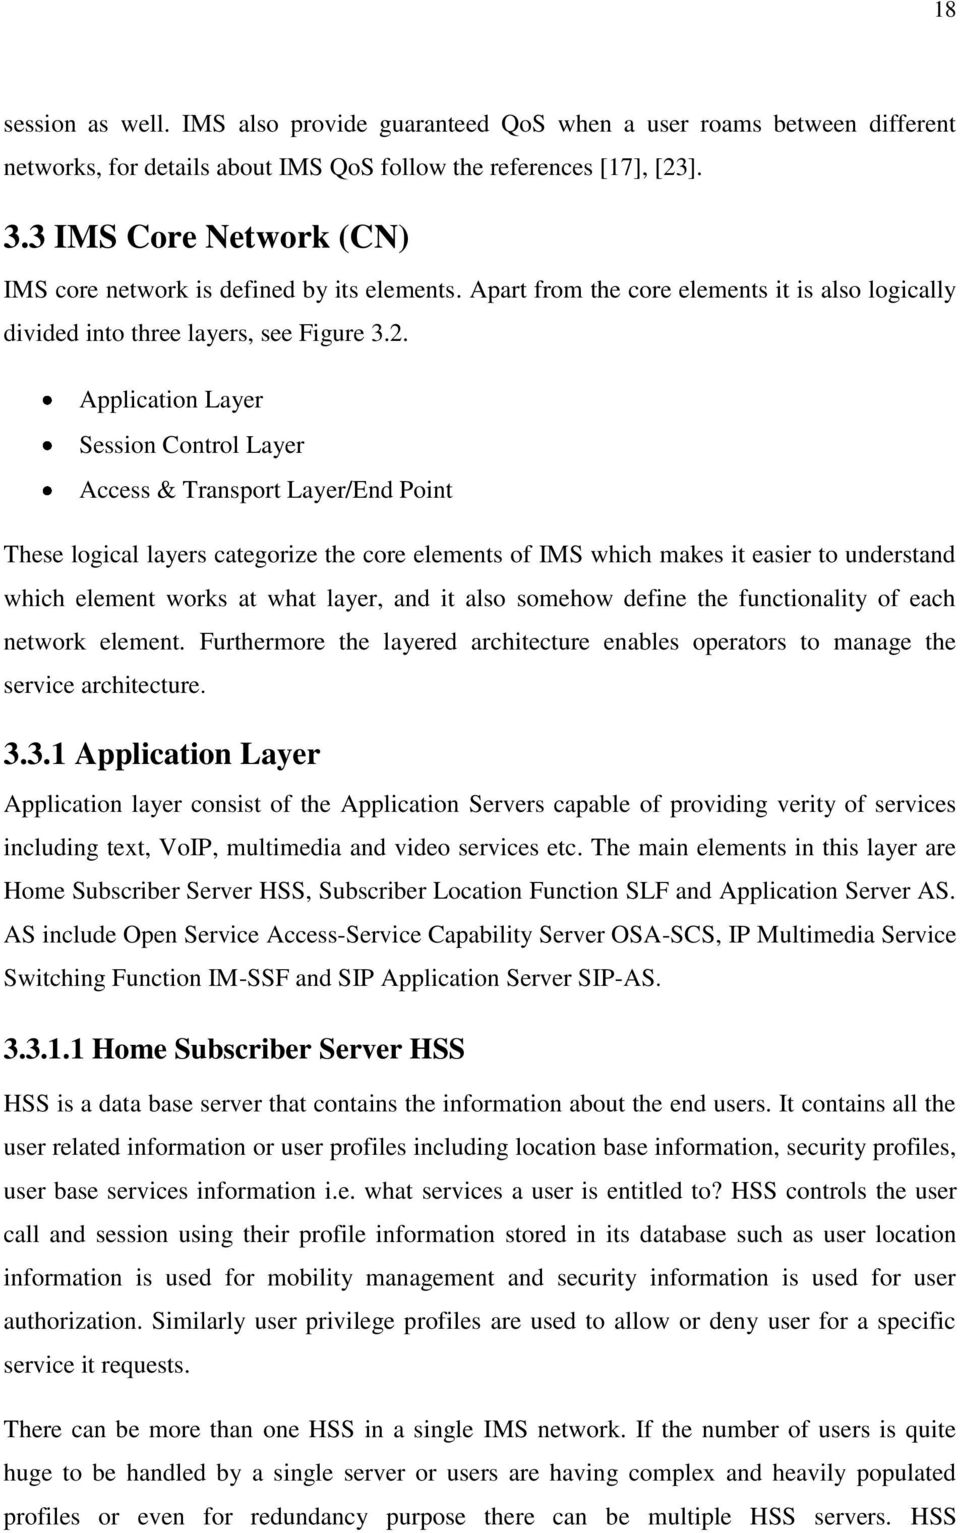 Application Layer Session Control Layer Access & Transport Layer/End Point These logical layers categorize the core elements of IMS which makes it easier to understand which element works at what